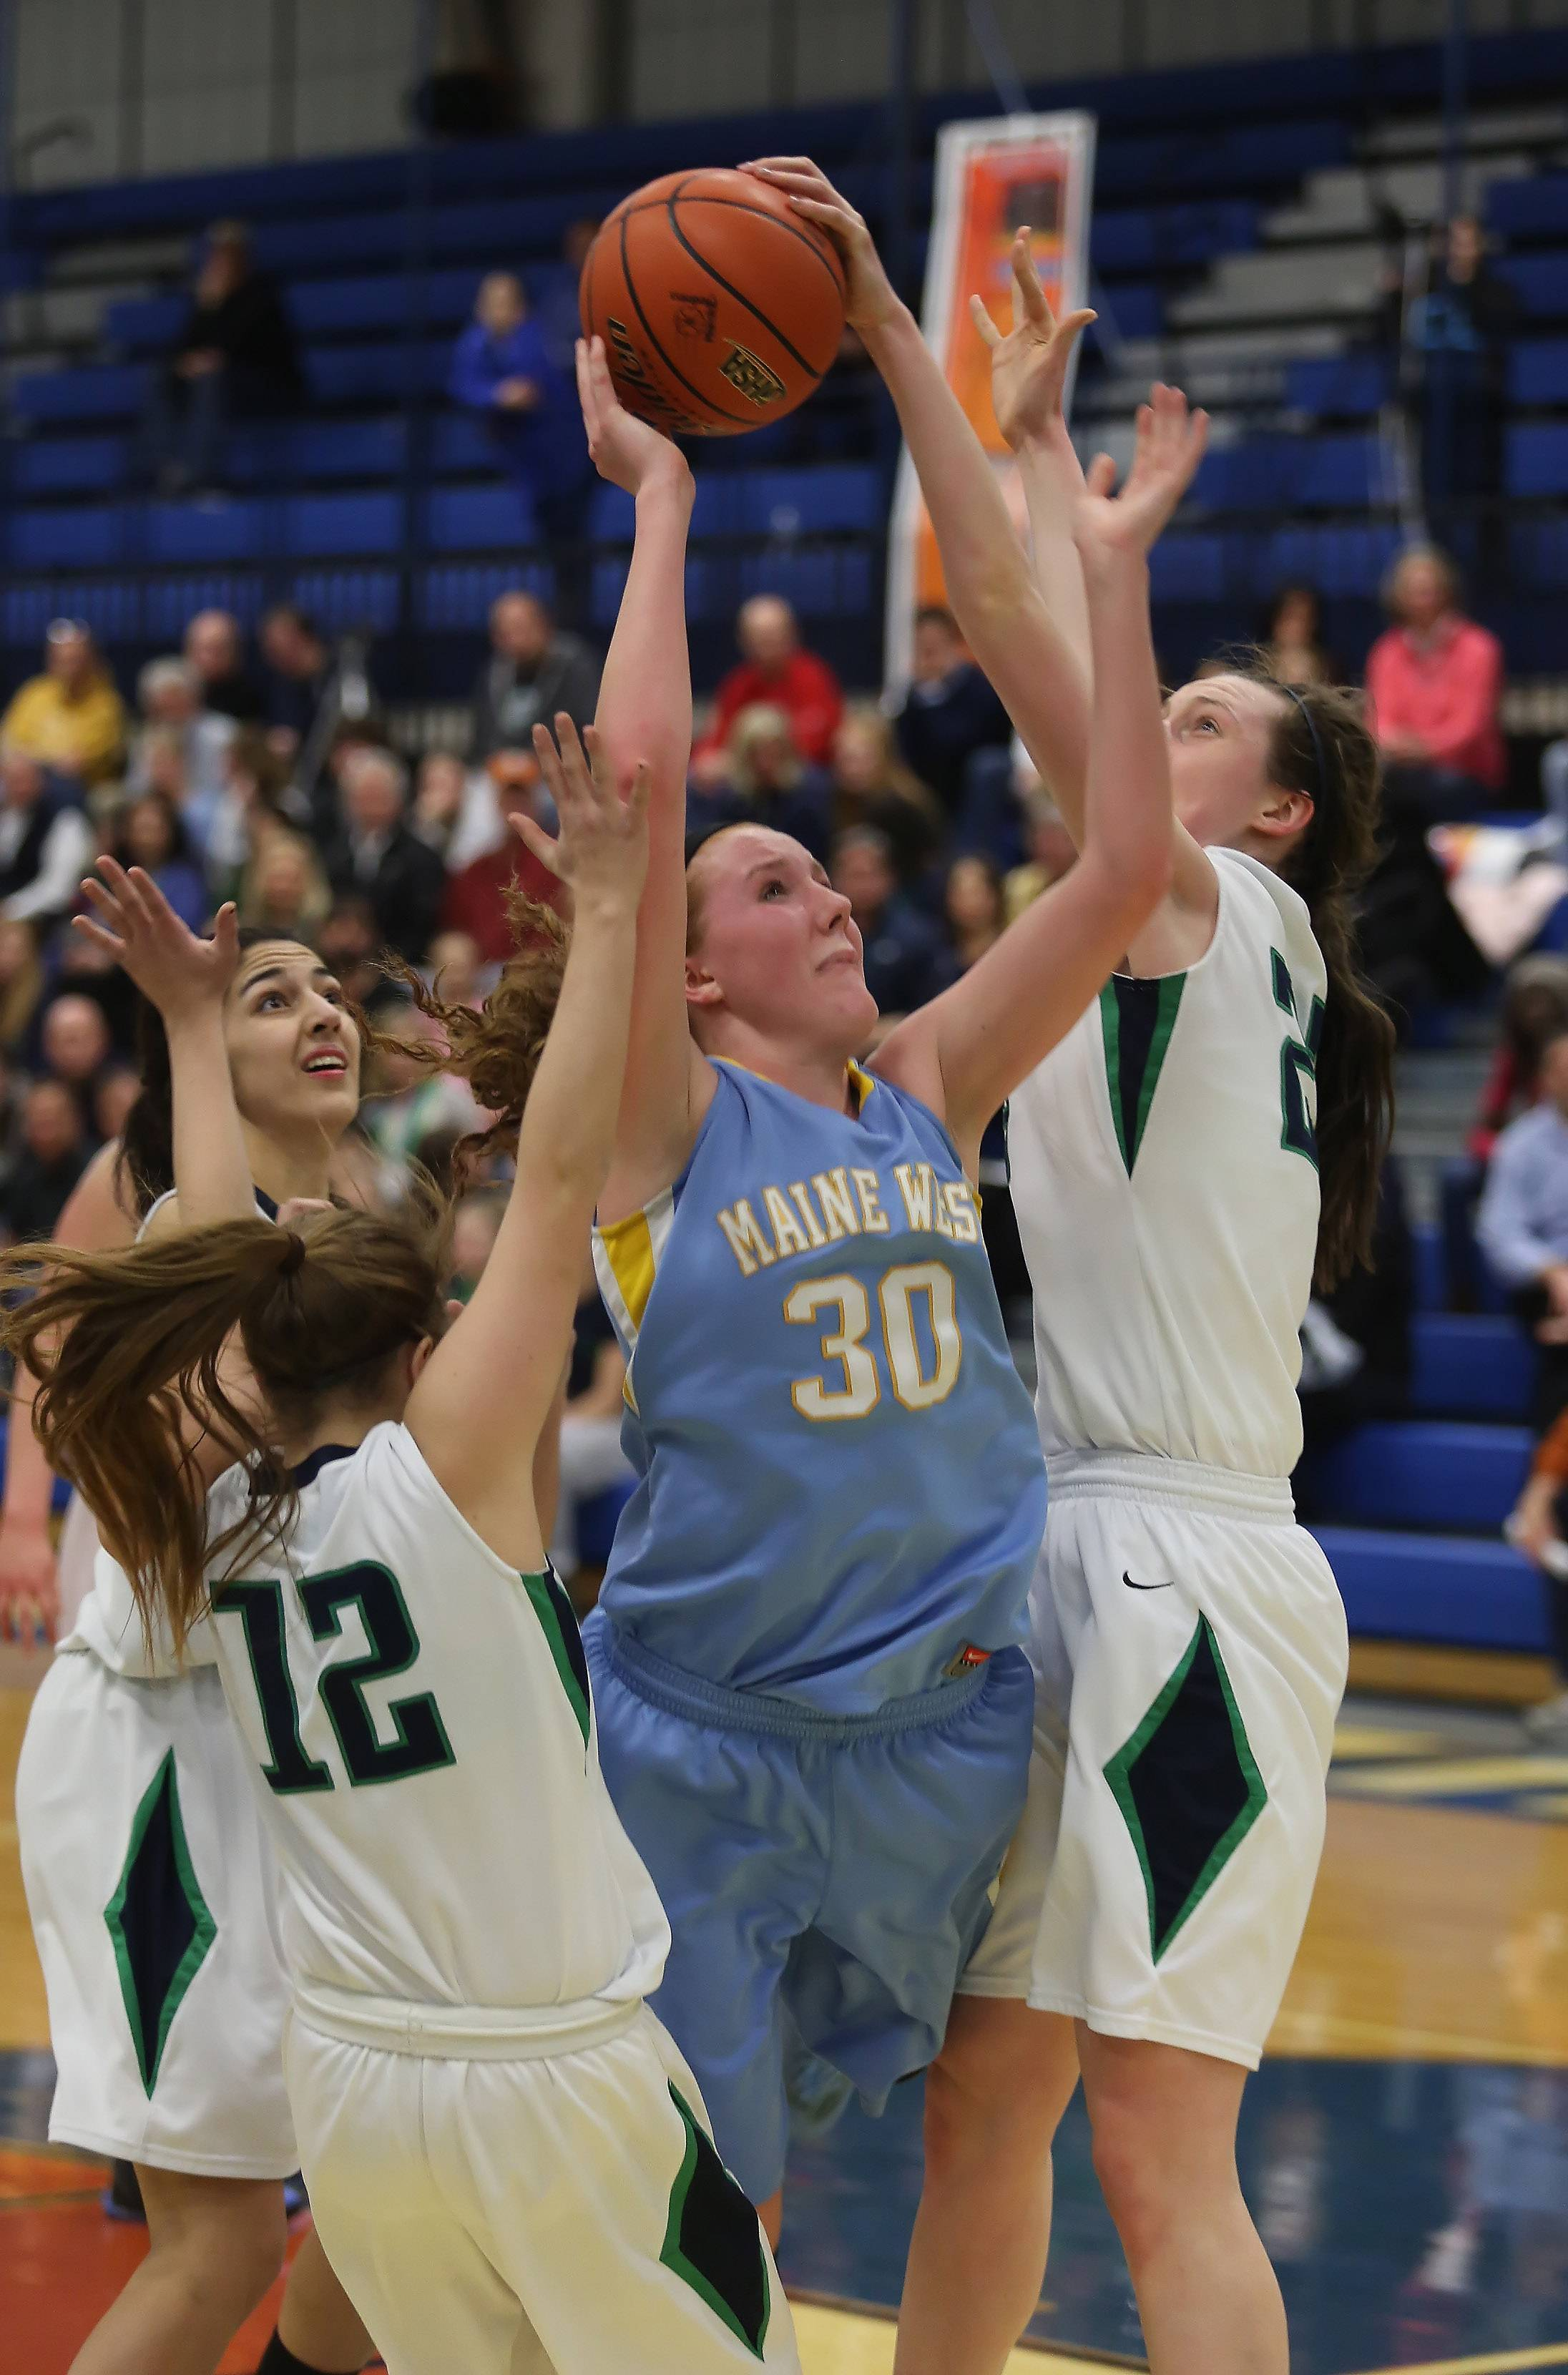 Maine West forward Brittany Collins is fouled by New Trier defenders Megan Neuhaus, left, and Jeanne Boehm during Monday's Class 4A sectional semifinal at Maine East.